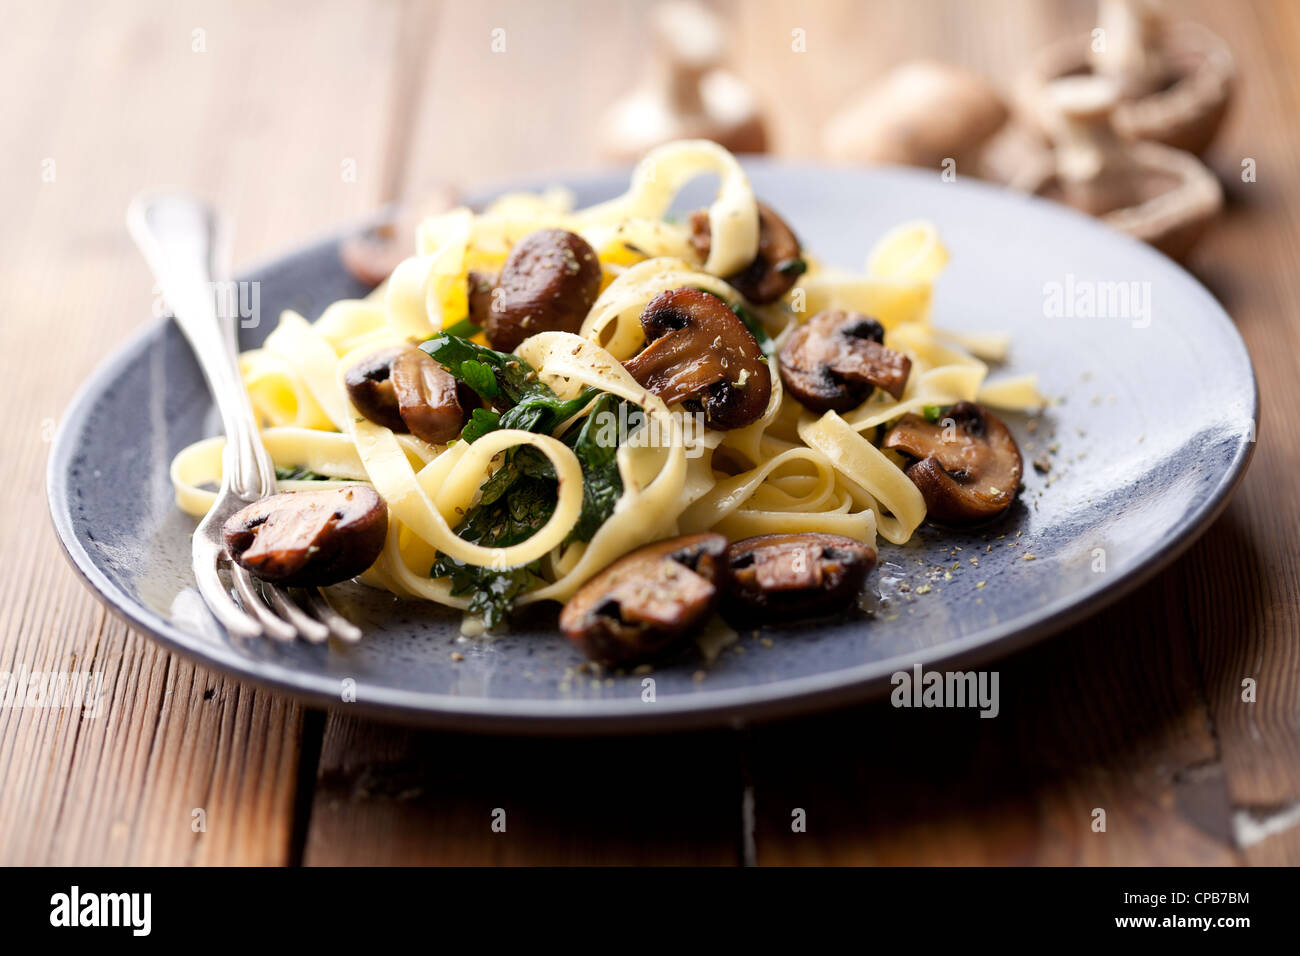 tagliatelles with spicach and mushrooms - Stock Image